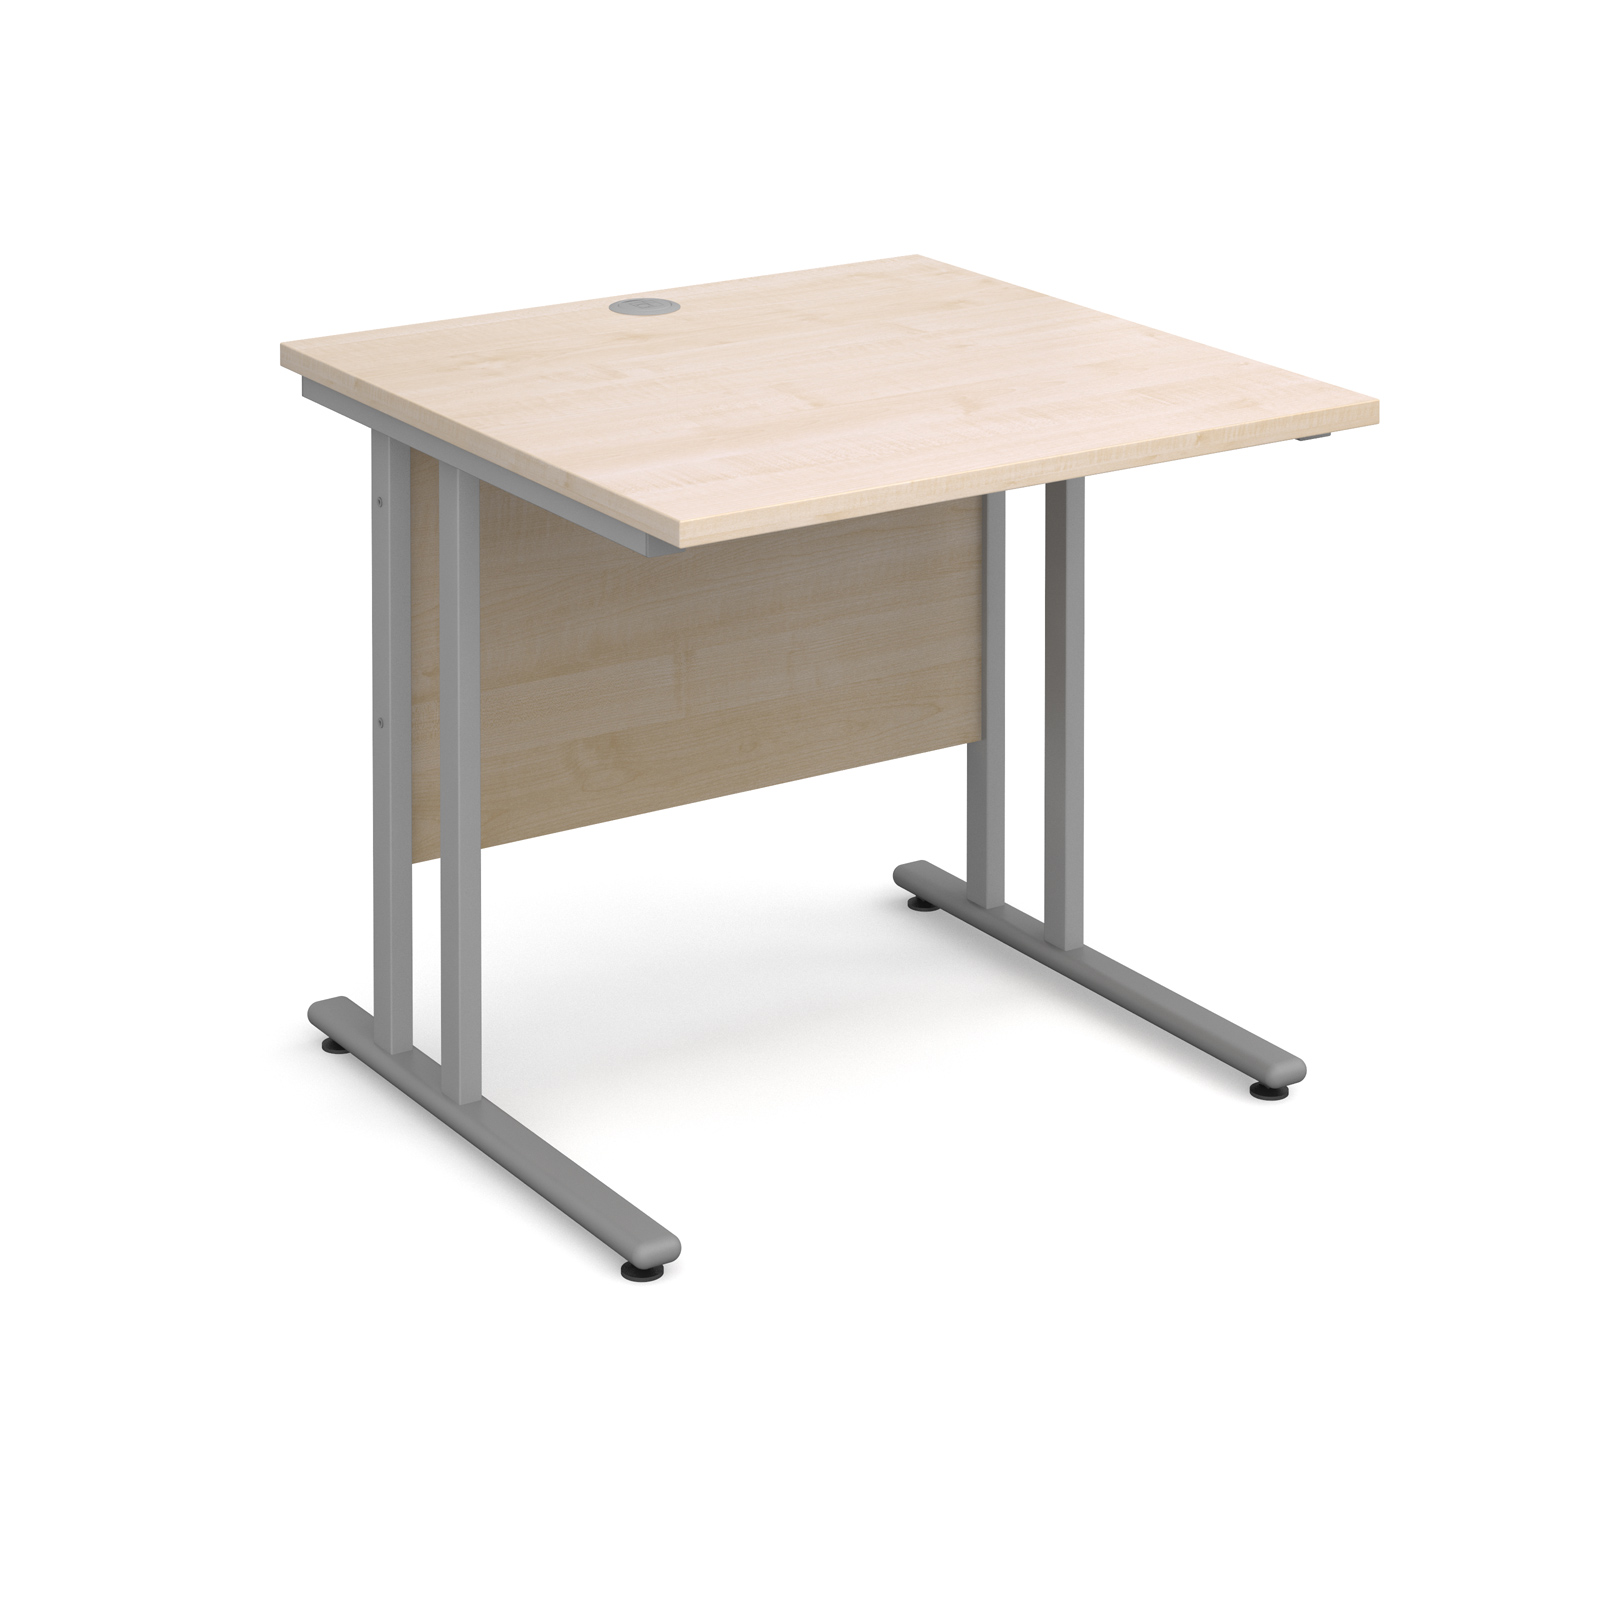 Dams Maestro 25 SL Maple Desk | Straight 800 Deep